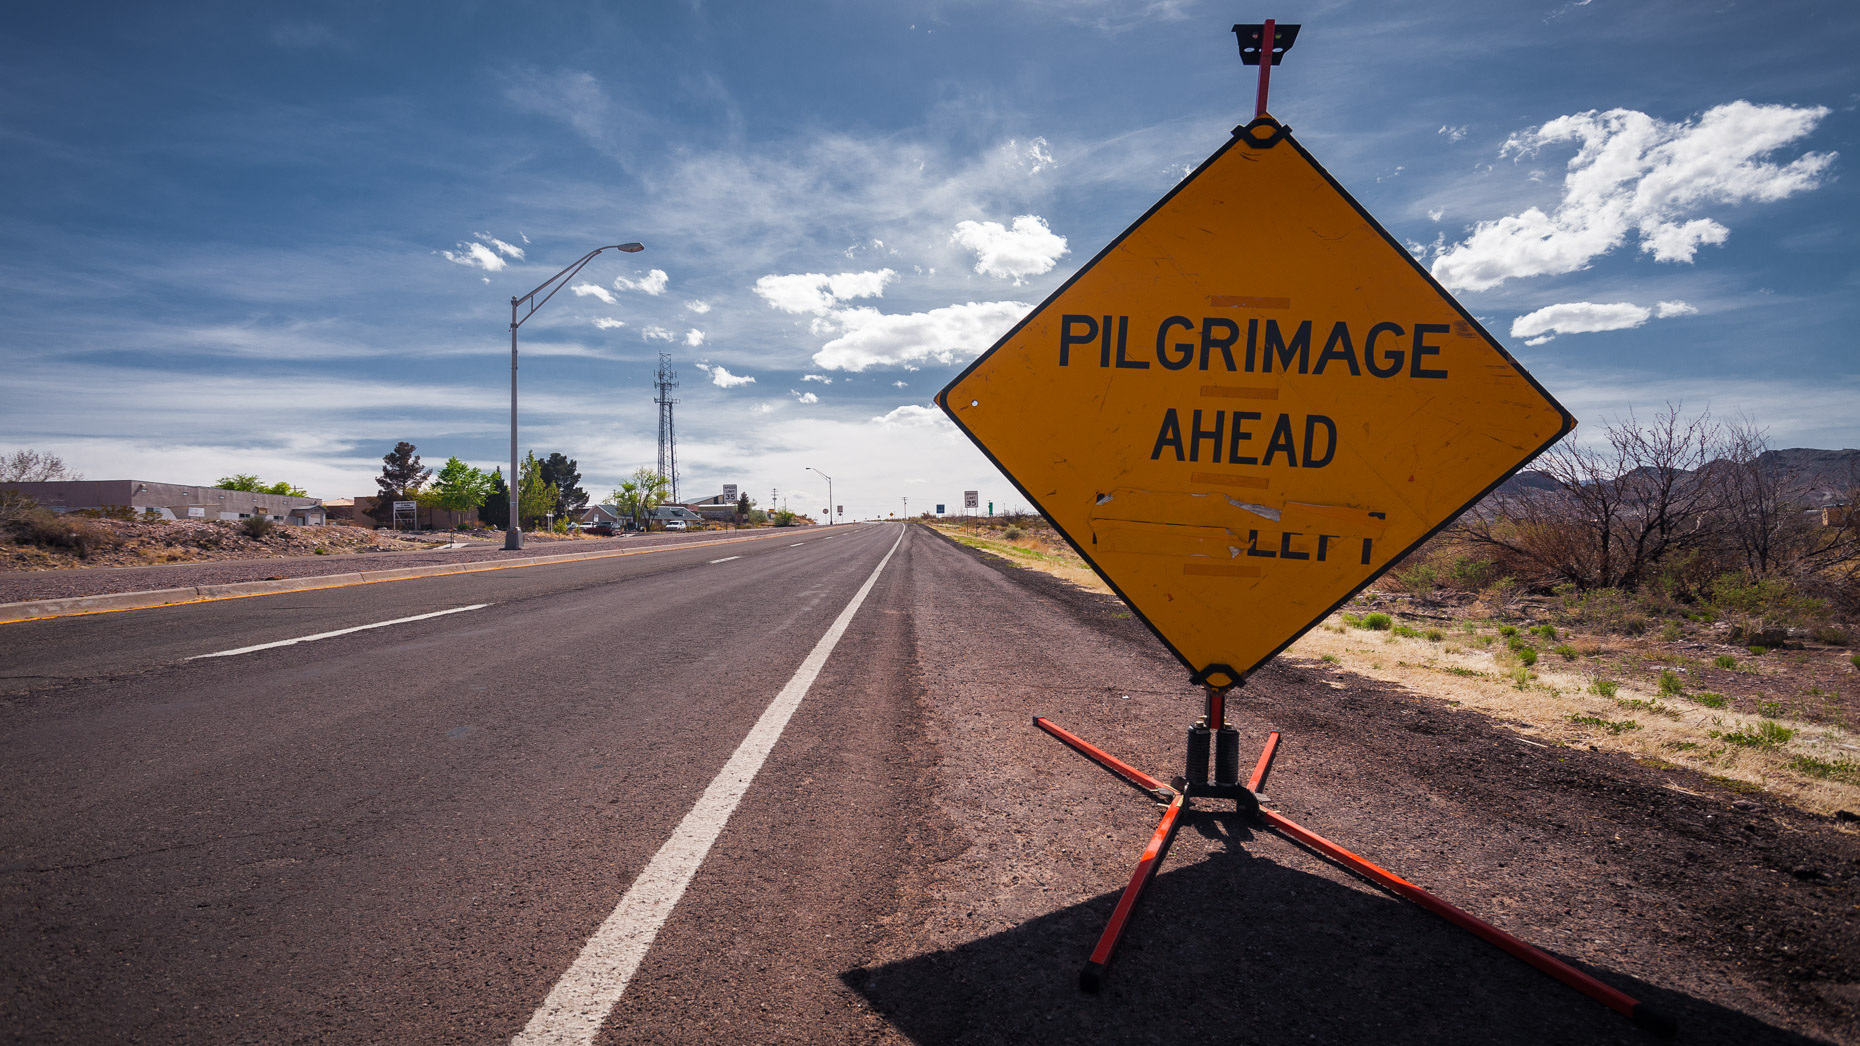 Pilgrimage Ahead